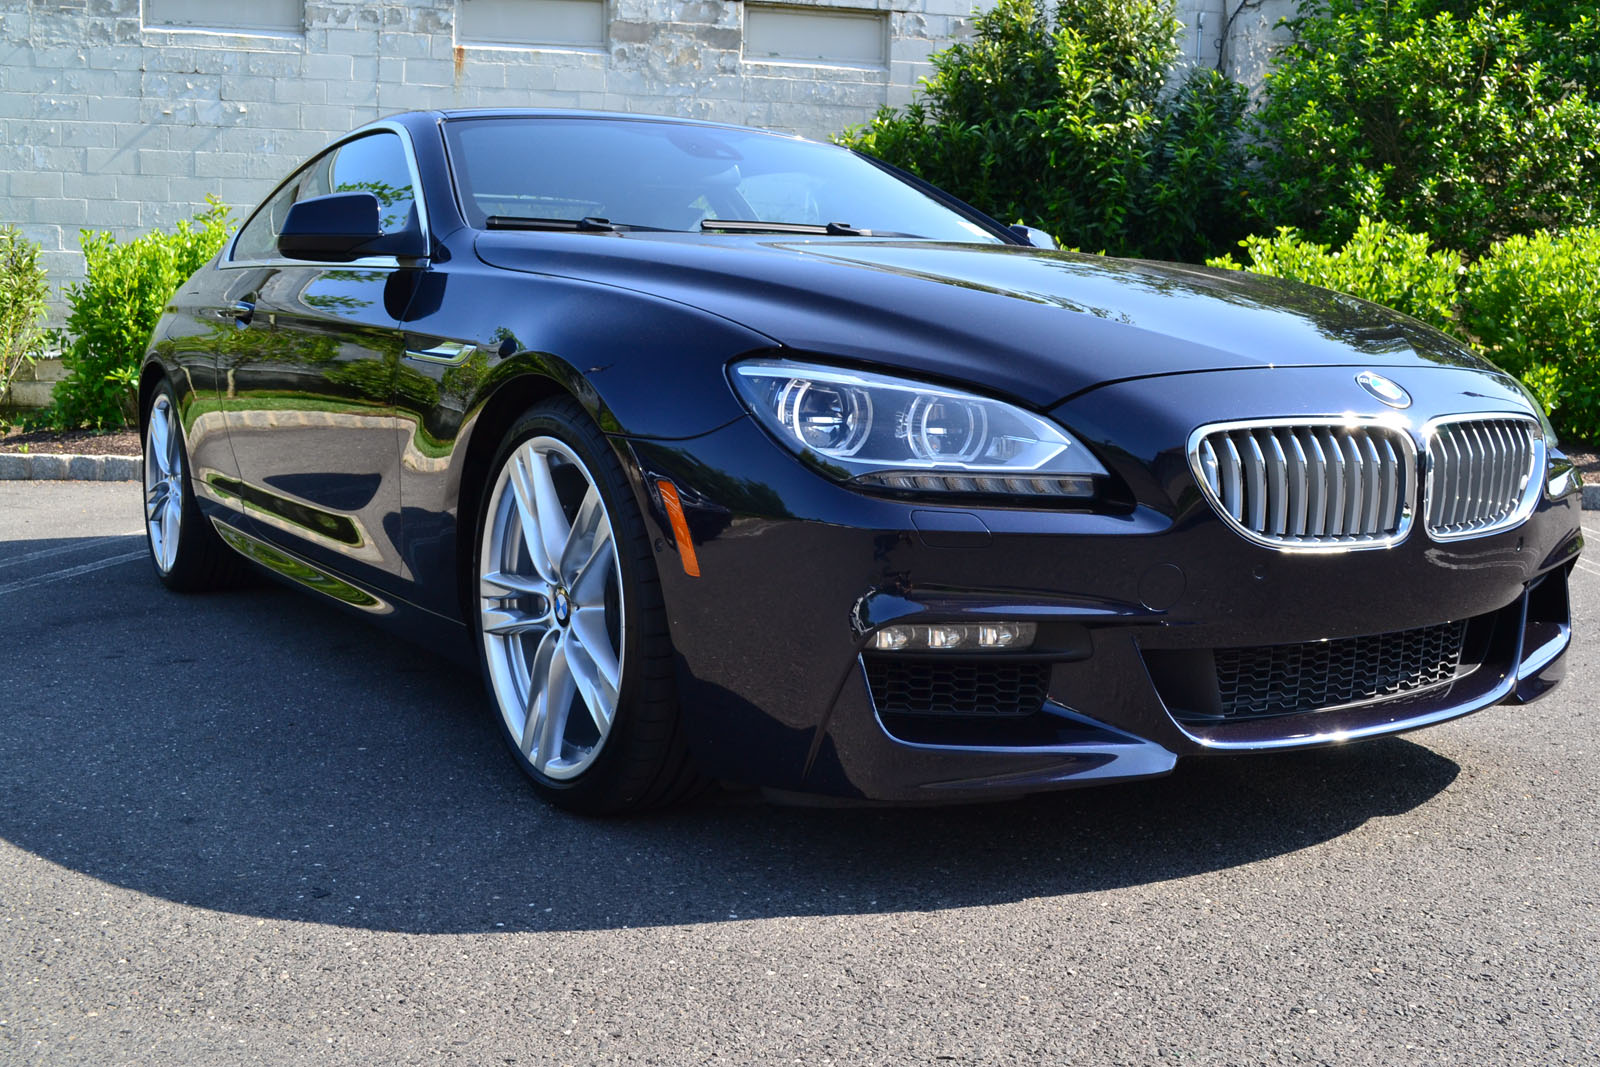 BMW I MSport Coupe PreOwned - 650i bmw price